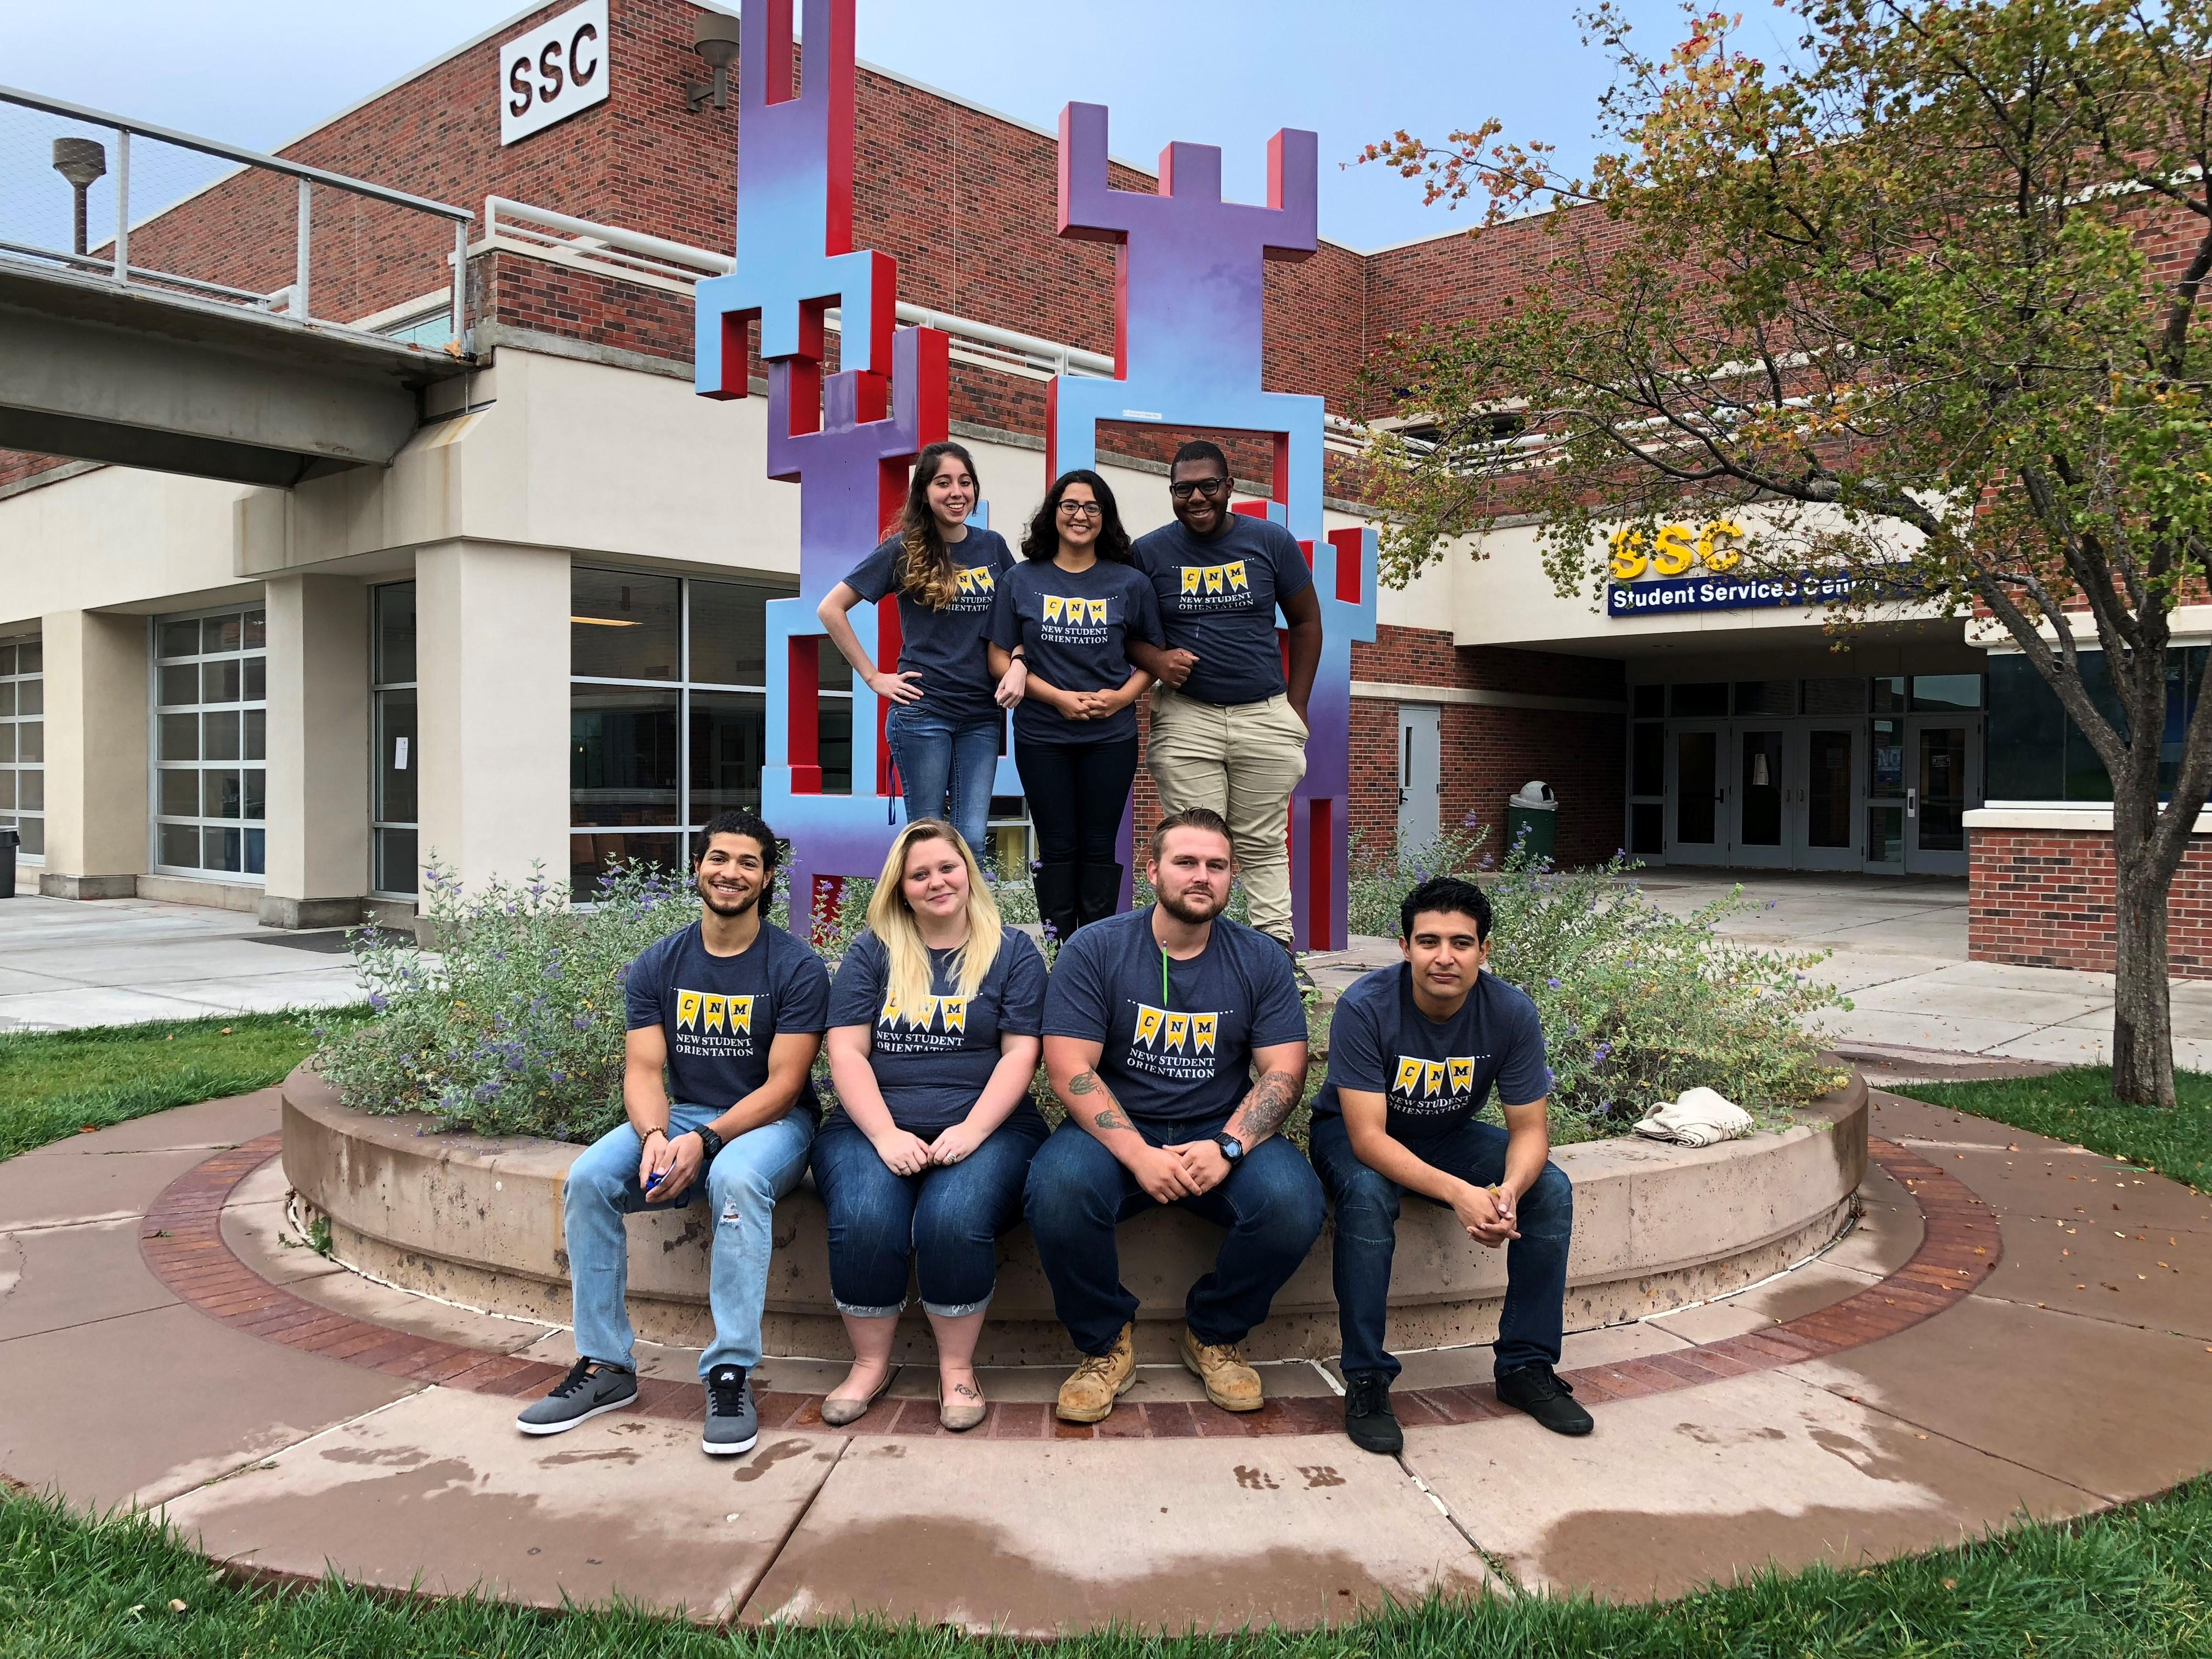 Cnm New Student Orientation Montoya Campus Summer 2018 13 Mar 2018